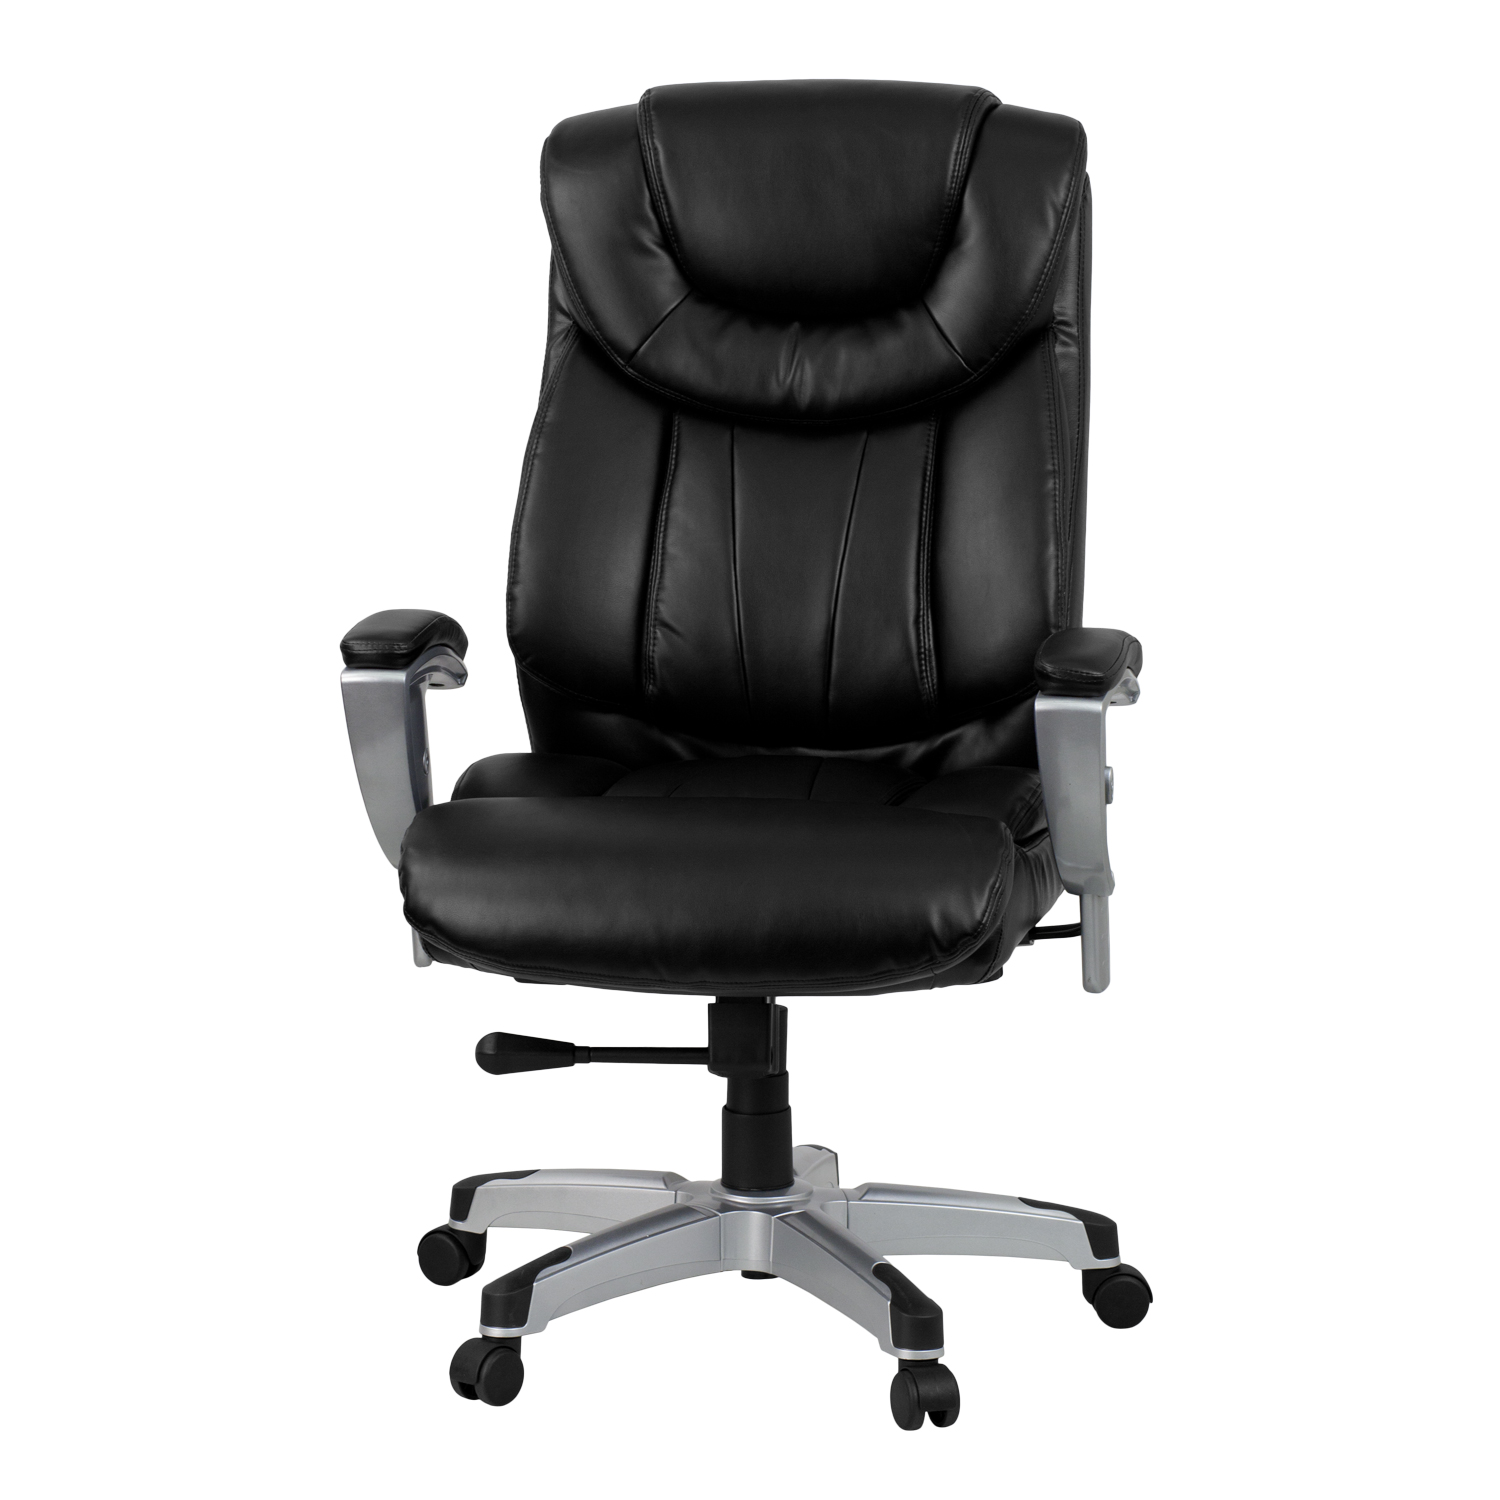 Best Rated Recliner Chairs Hercules Series Big And Tall 400 Lb Rated Black Leather